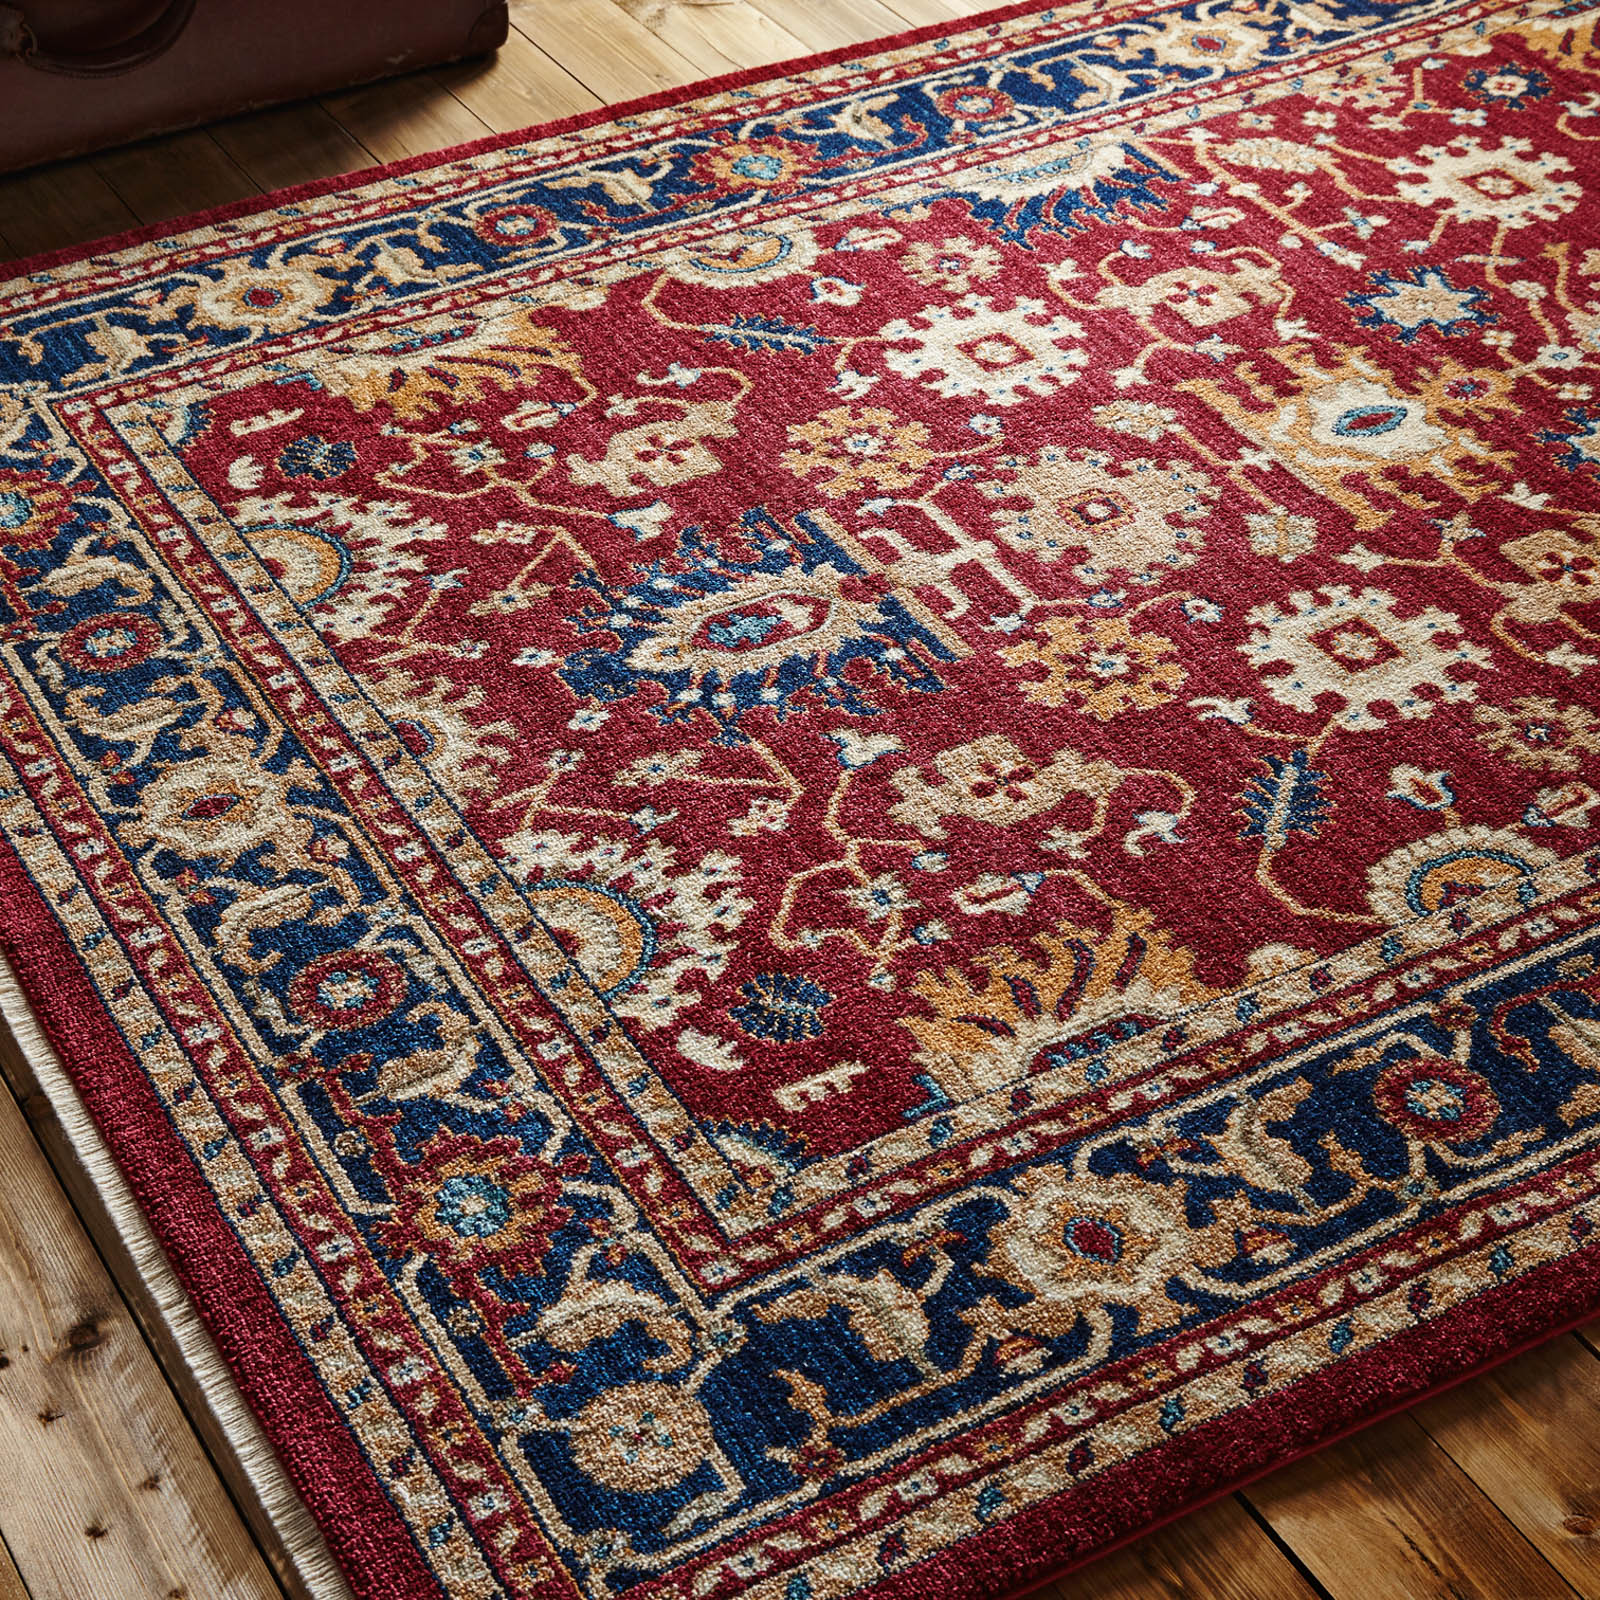 Persia Tabriz Rugs in Red and Navy